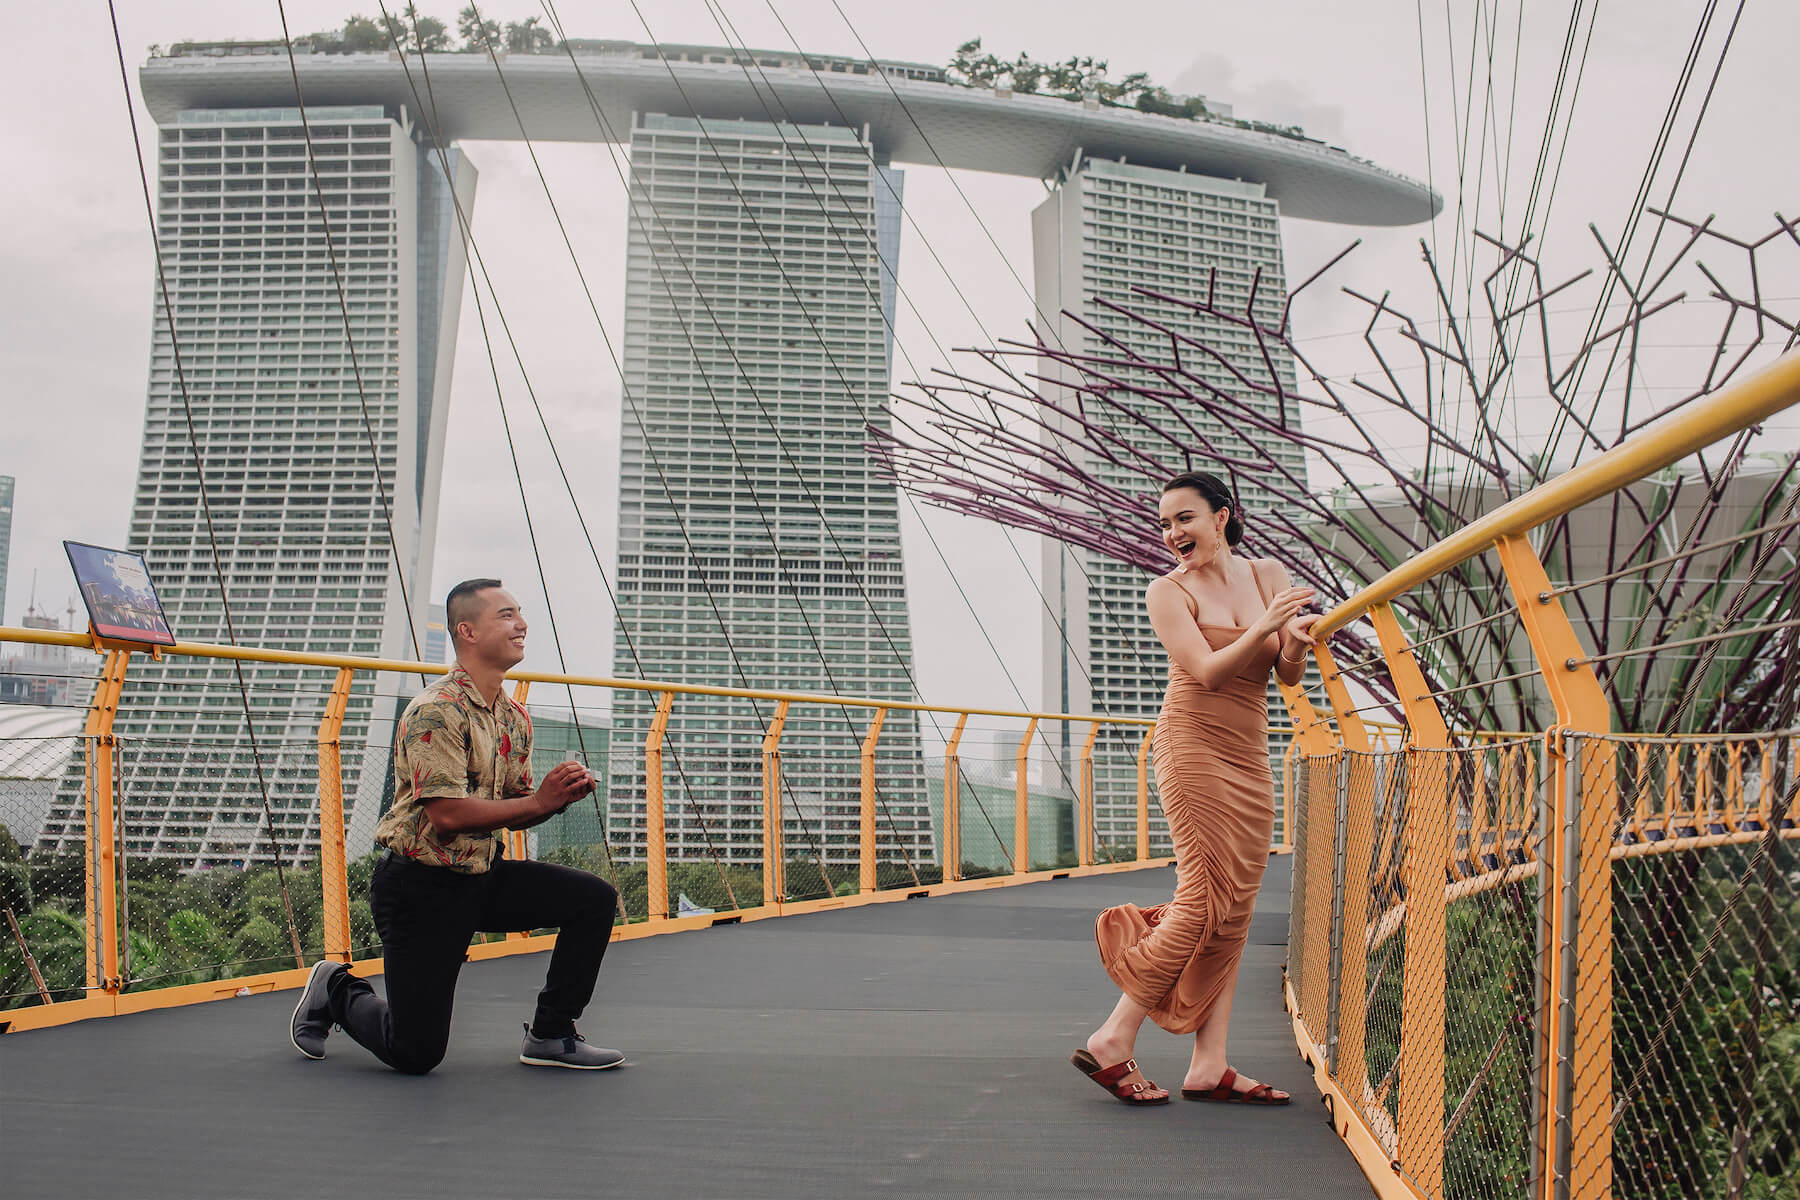 a woman wearing a taupe coloured dress is being proposed to on a bridge in Singapore, the man is wearing a colourful shirt and is on one knee